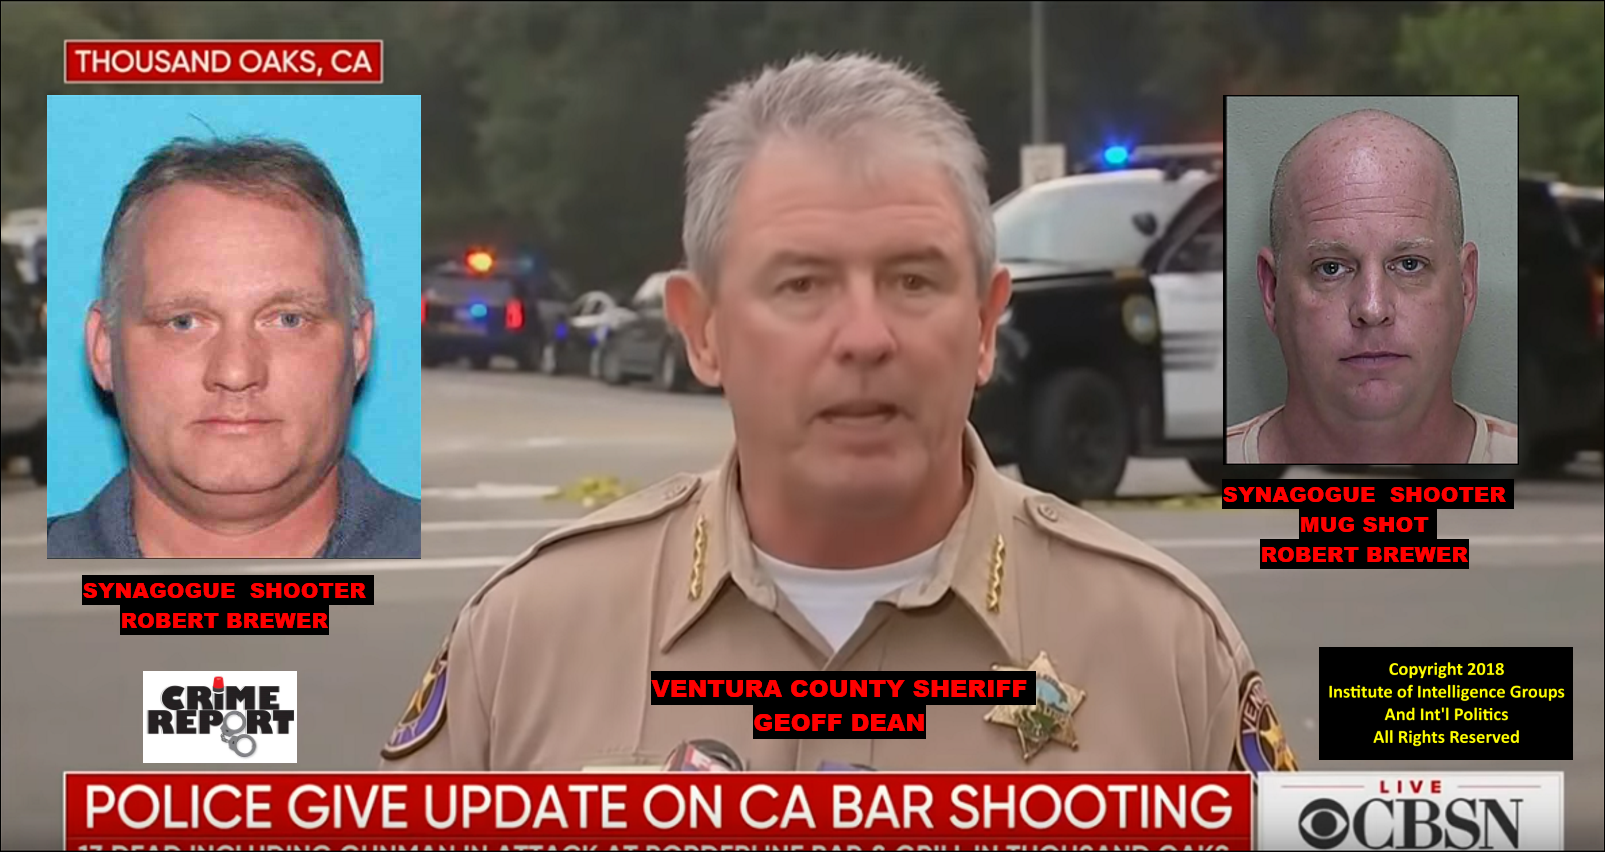 THOUSAND OAKS BAR SHOOTING